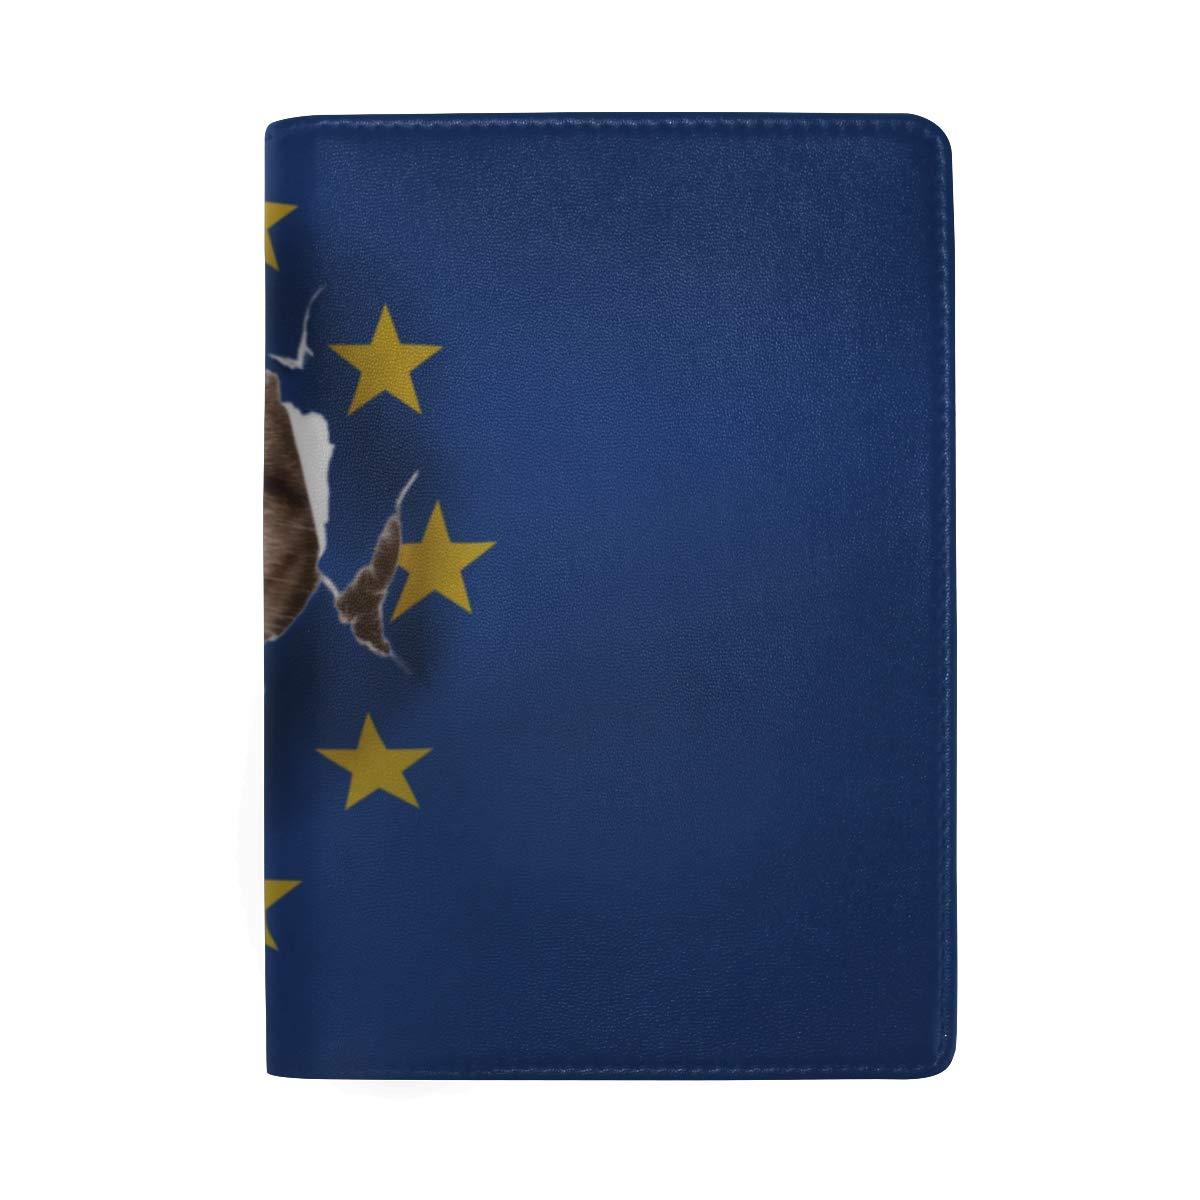 Barbarian Passport Cover Holder And Luggage Tag Set In Gift Box